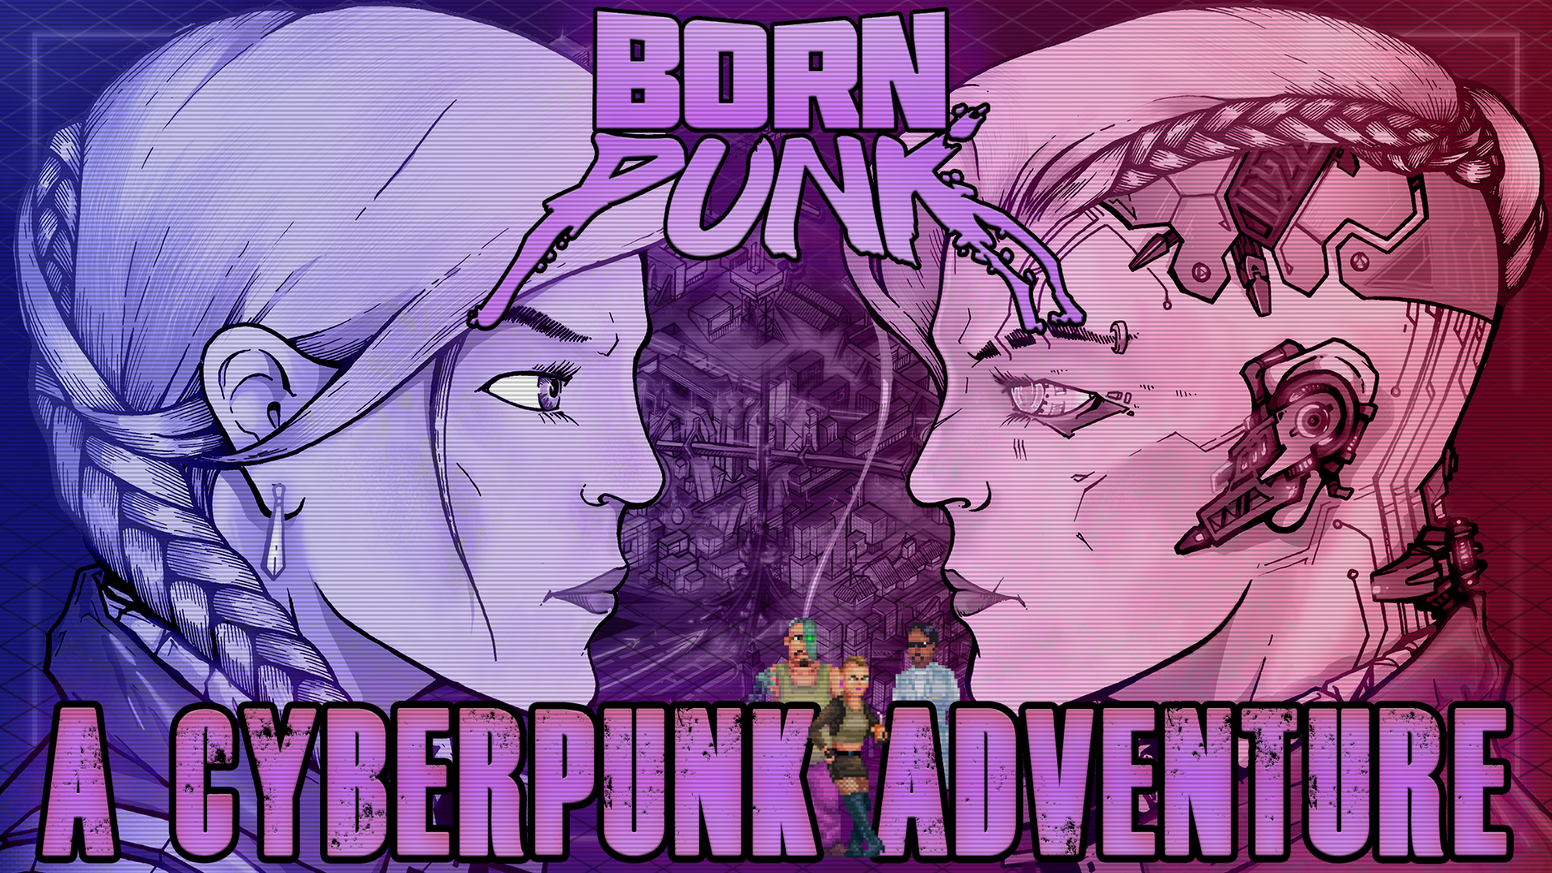 Born Punk is a narrative- and puzzle-driven cyberpunk pixel art point & click adventure in the style of classic 90s games. Accompany Eevi, a former corporate hacker, as she tries to understand why and how her cyber-implants were infected by a rogue AI.